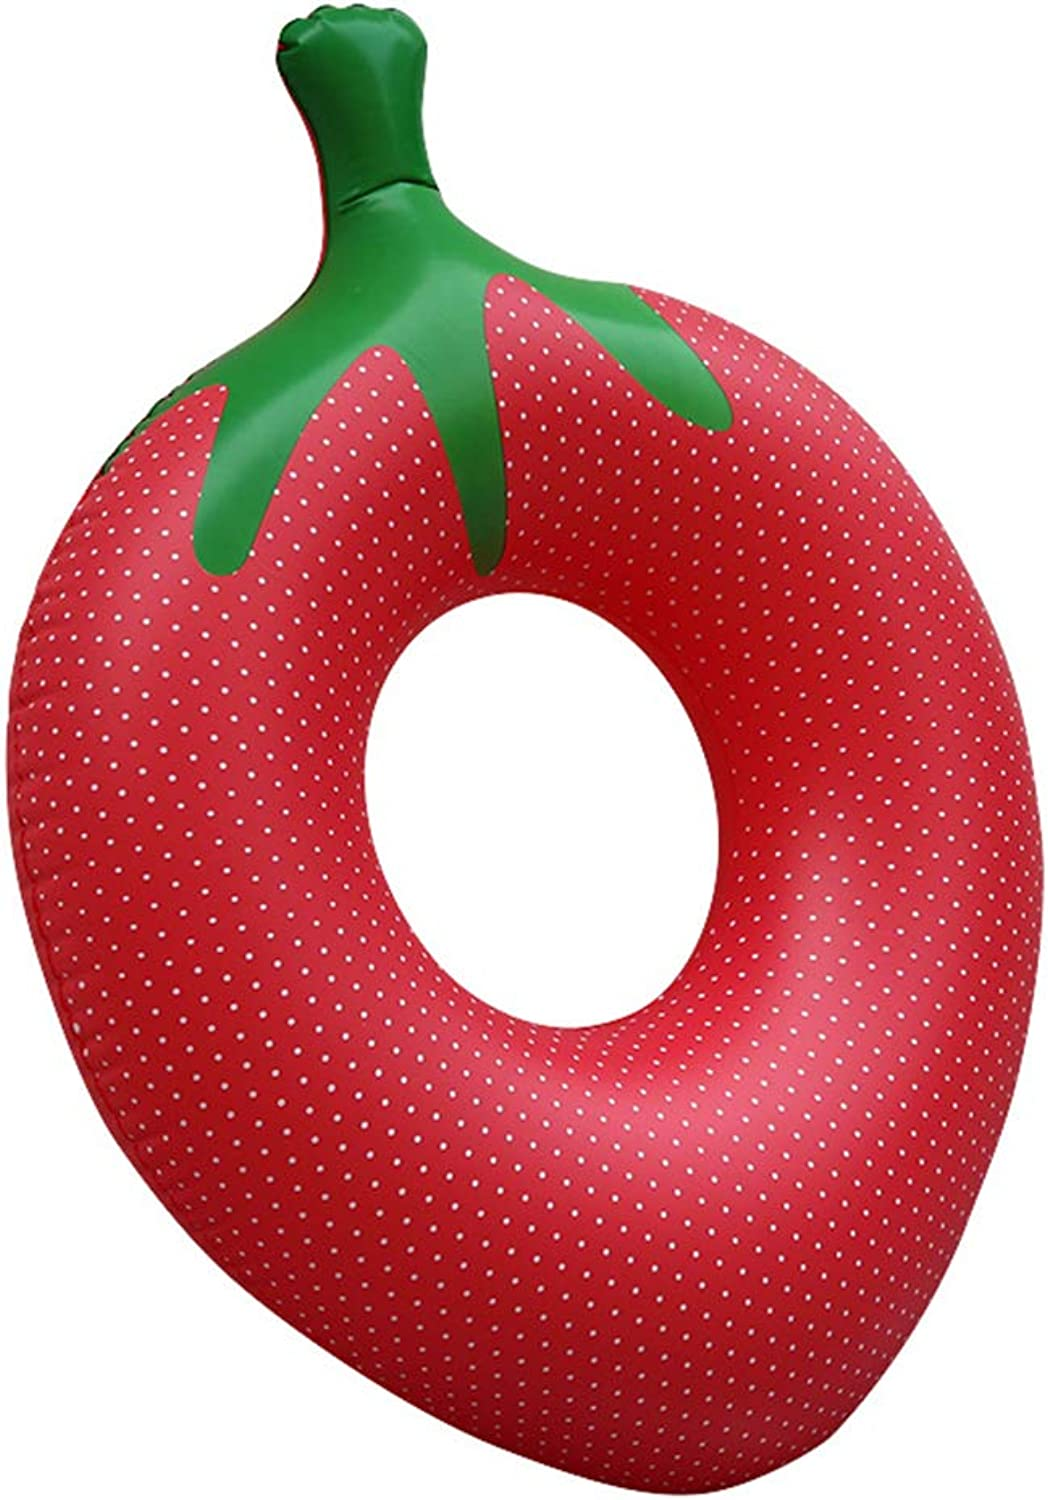 Inflatable Pool Float Strawberry Swim Tube Raft with Rapid Valves Summer Beach Swimming Pool Party Lounge Decorations Toys for Adults & Kids